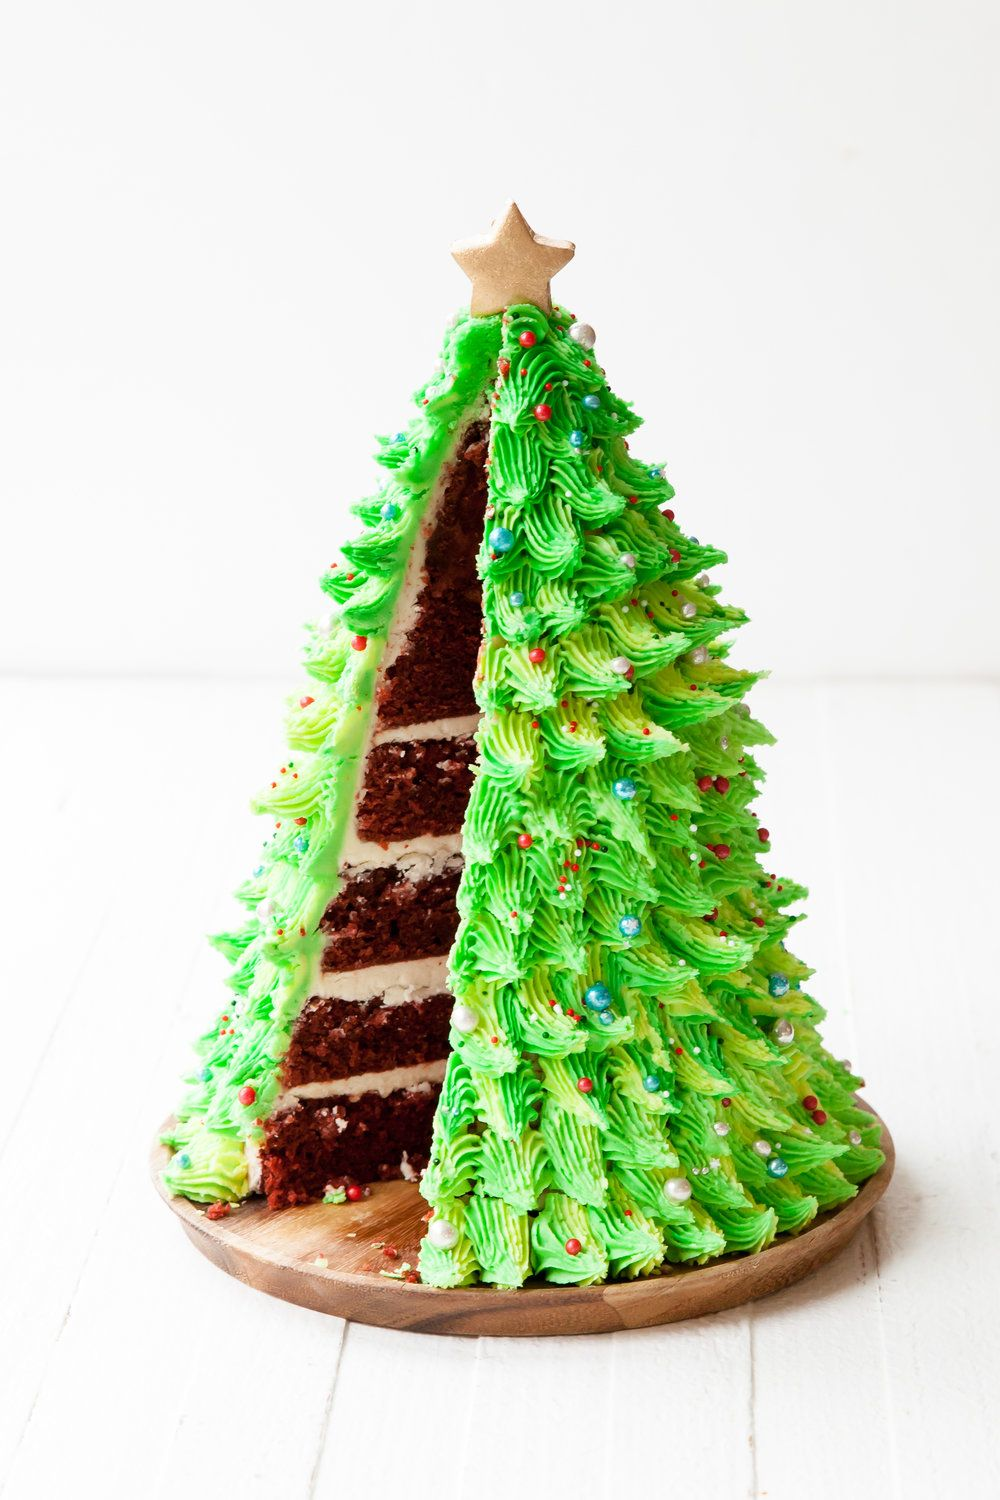 14 cake Christmas 2019 ideas